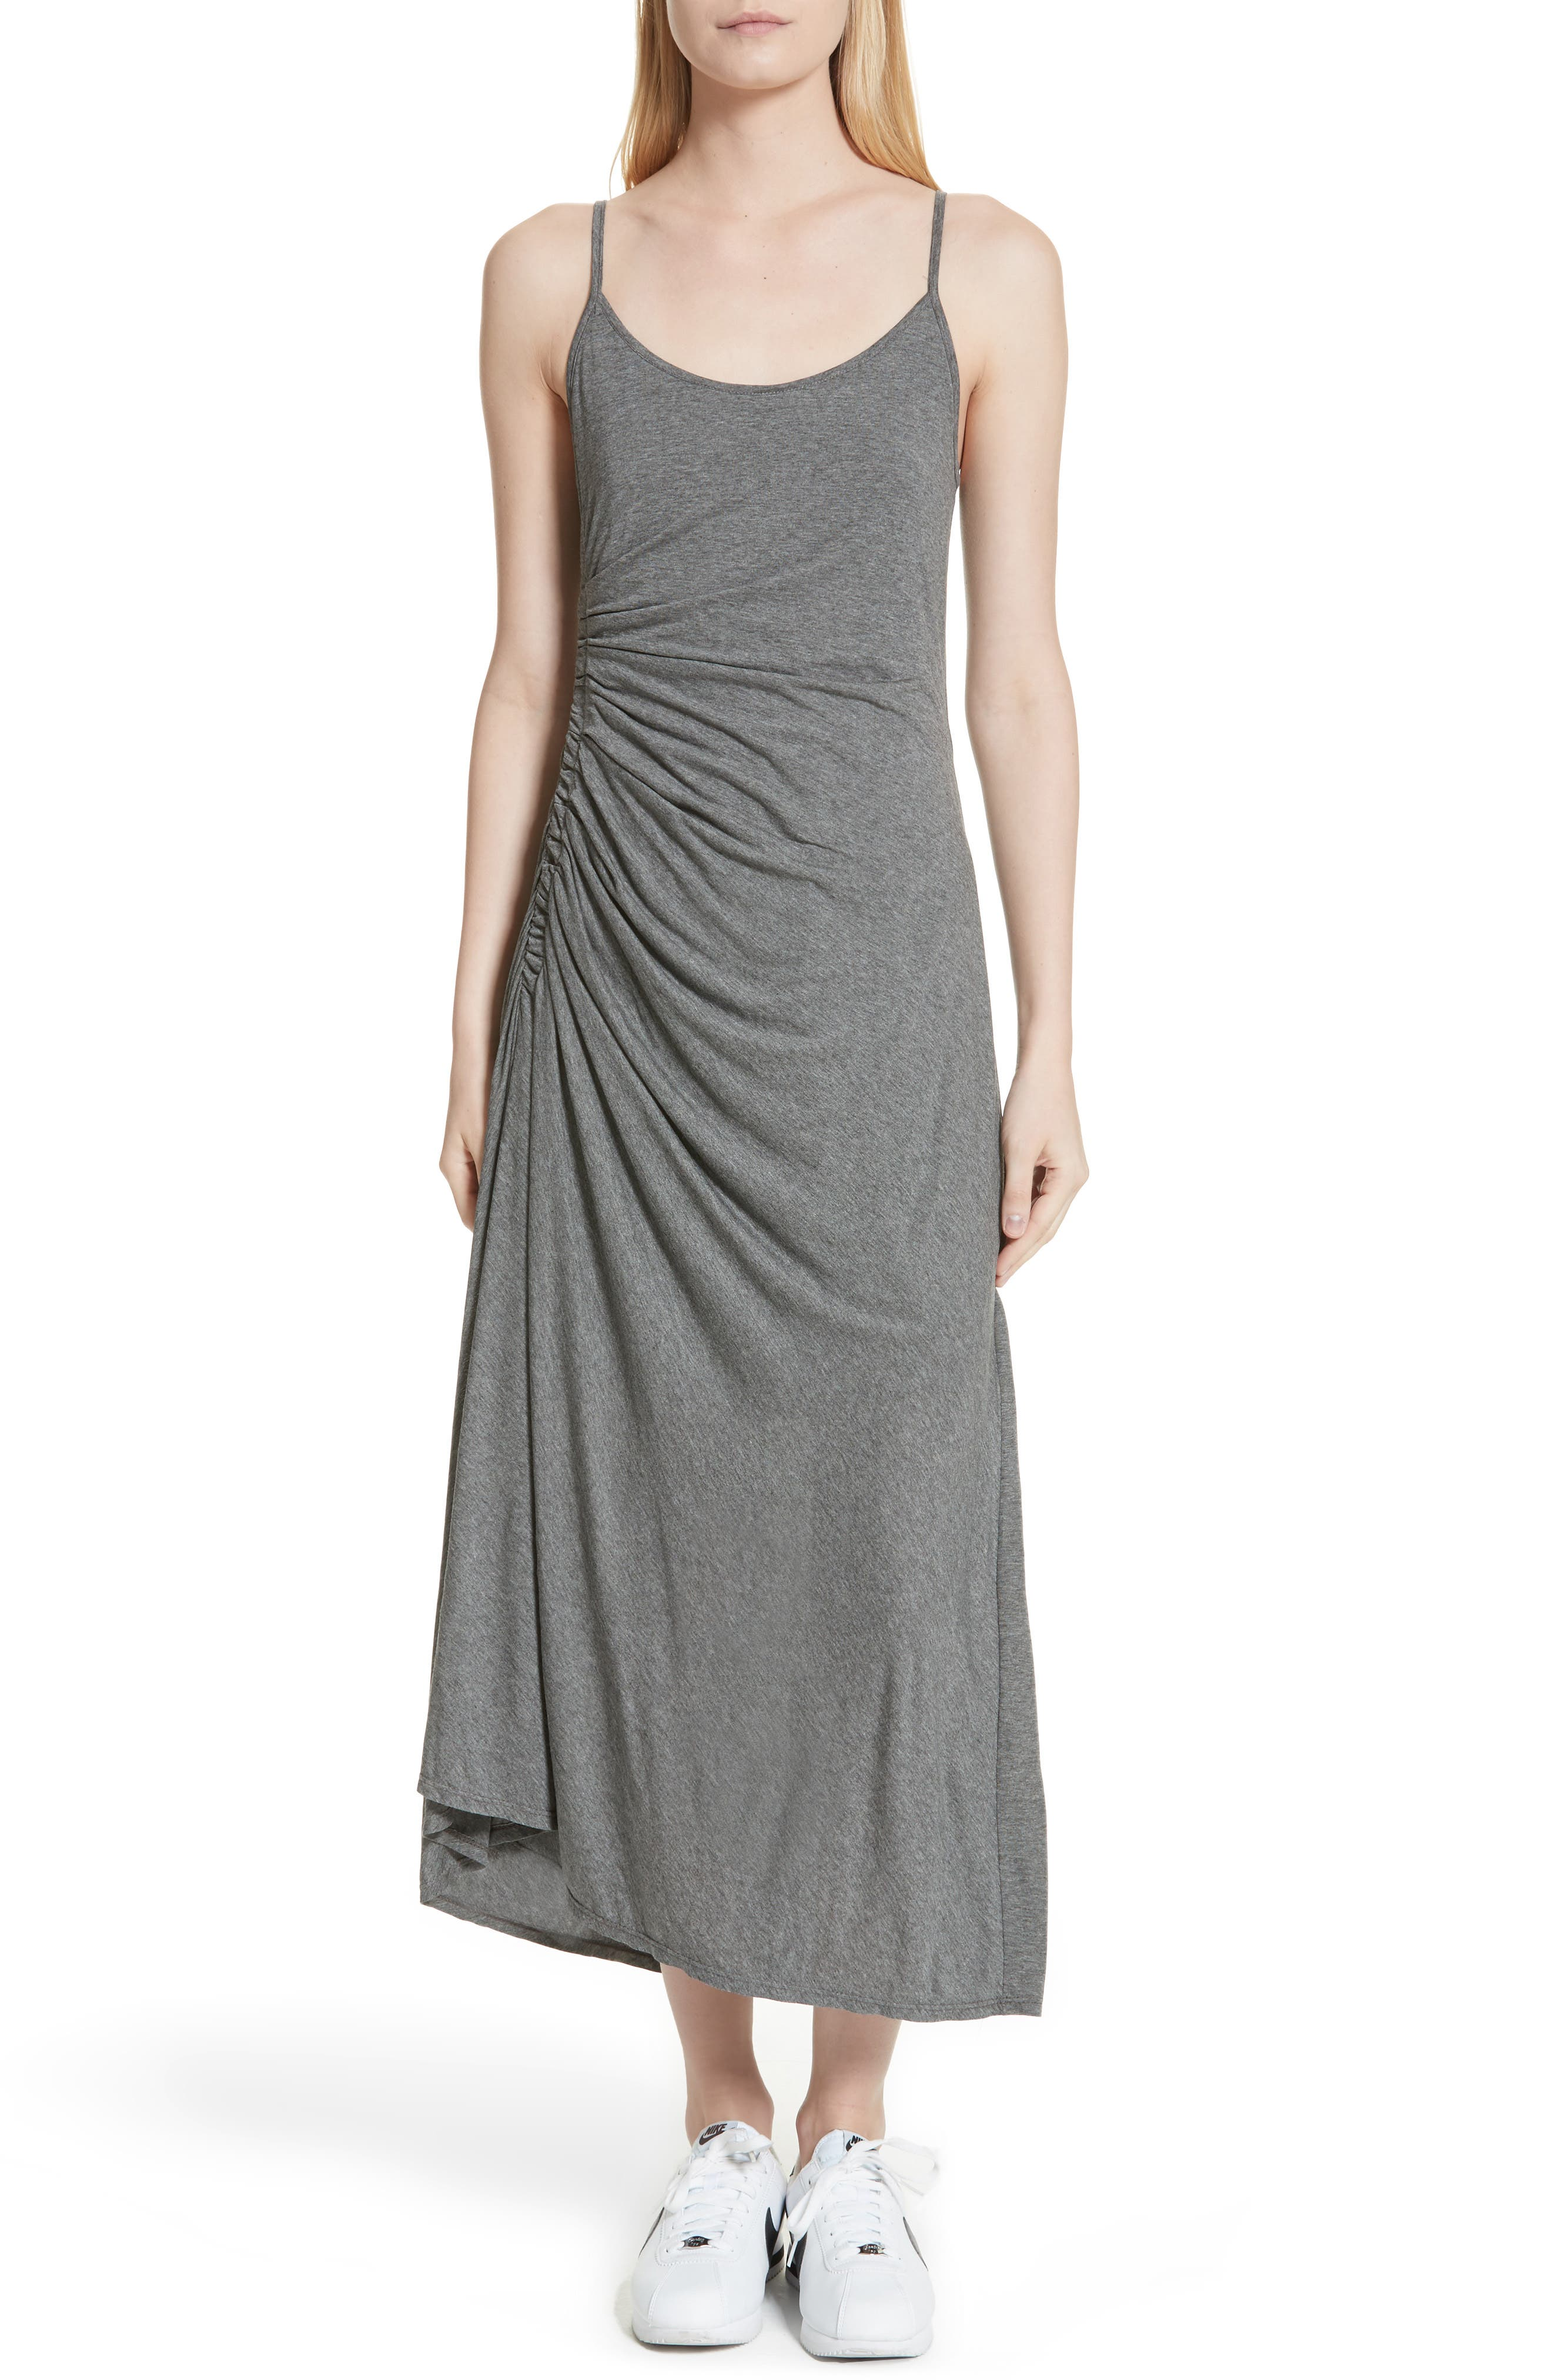 A.L.C. Delia Ruched Midi Dress